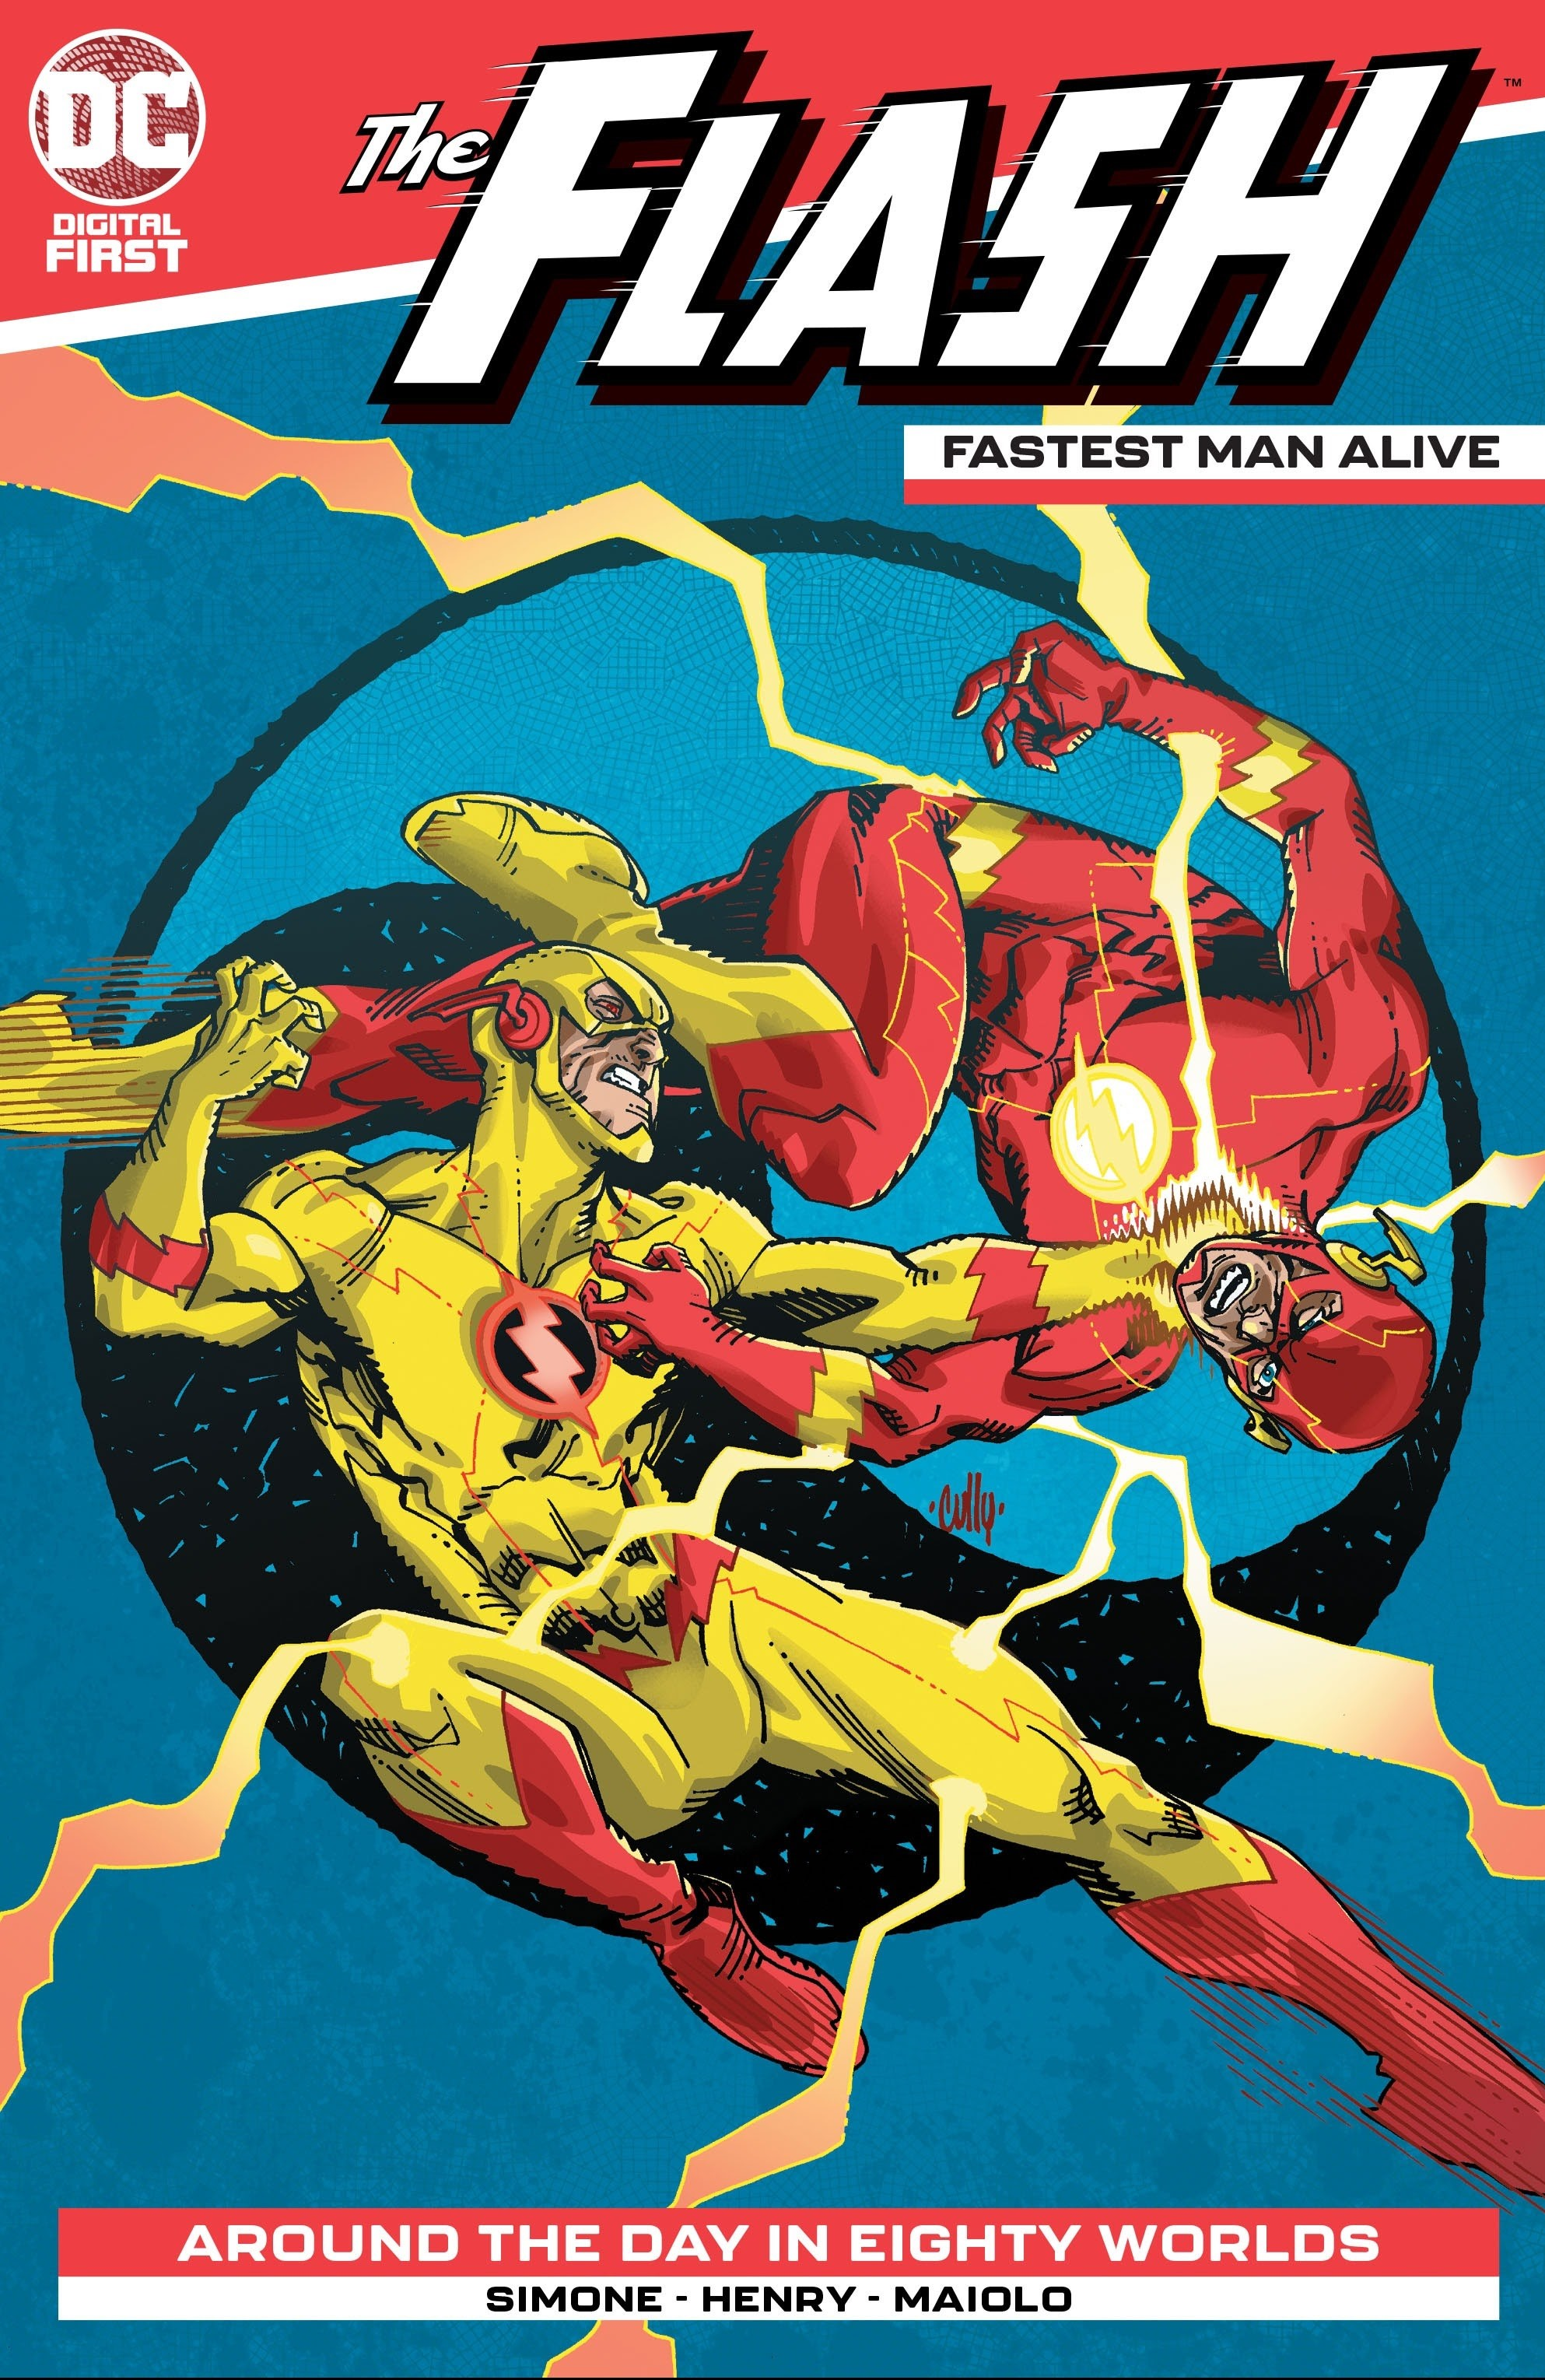 The Flash: Fastest Man Alive Vol 1 5 (Digital)